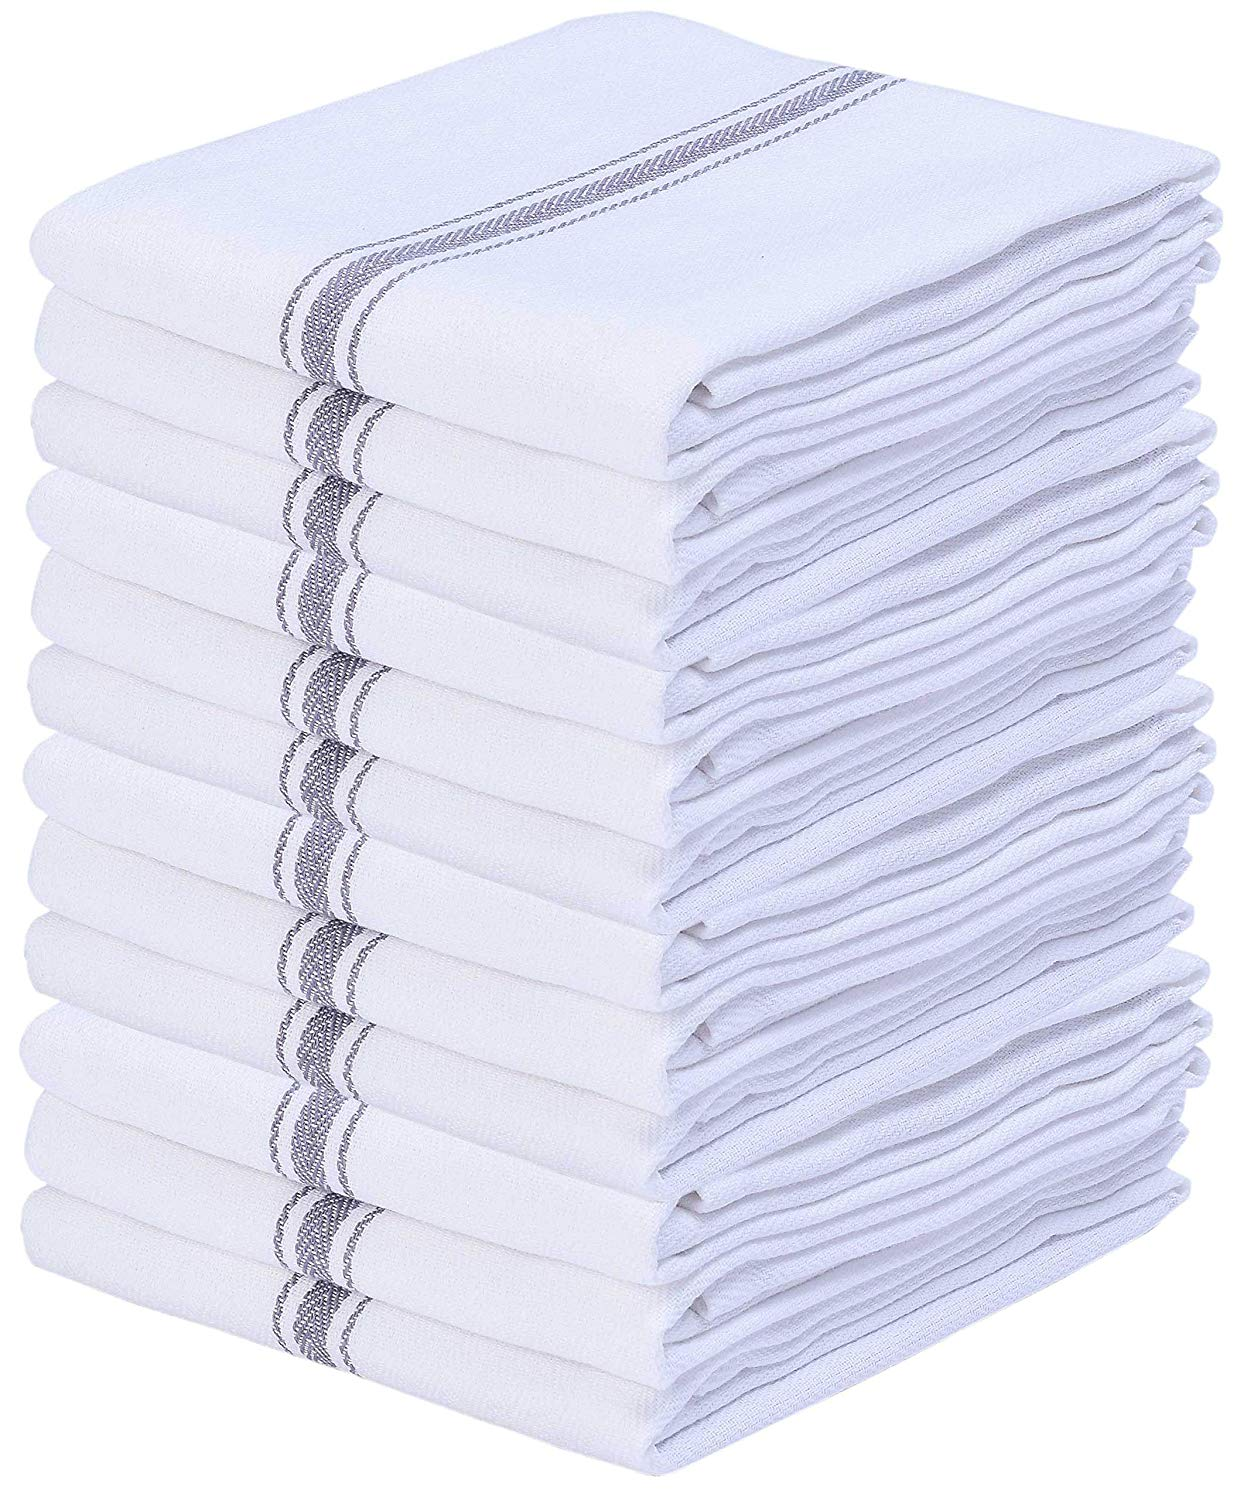 12 Pack Charcoal White Scandia Stripe Kitchen Dish Tea Towels, 100% Cotton, 16x26, Highly Absorbent, Professional Grade, Sturdy Weave, Machine Washable